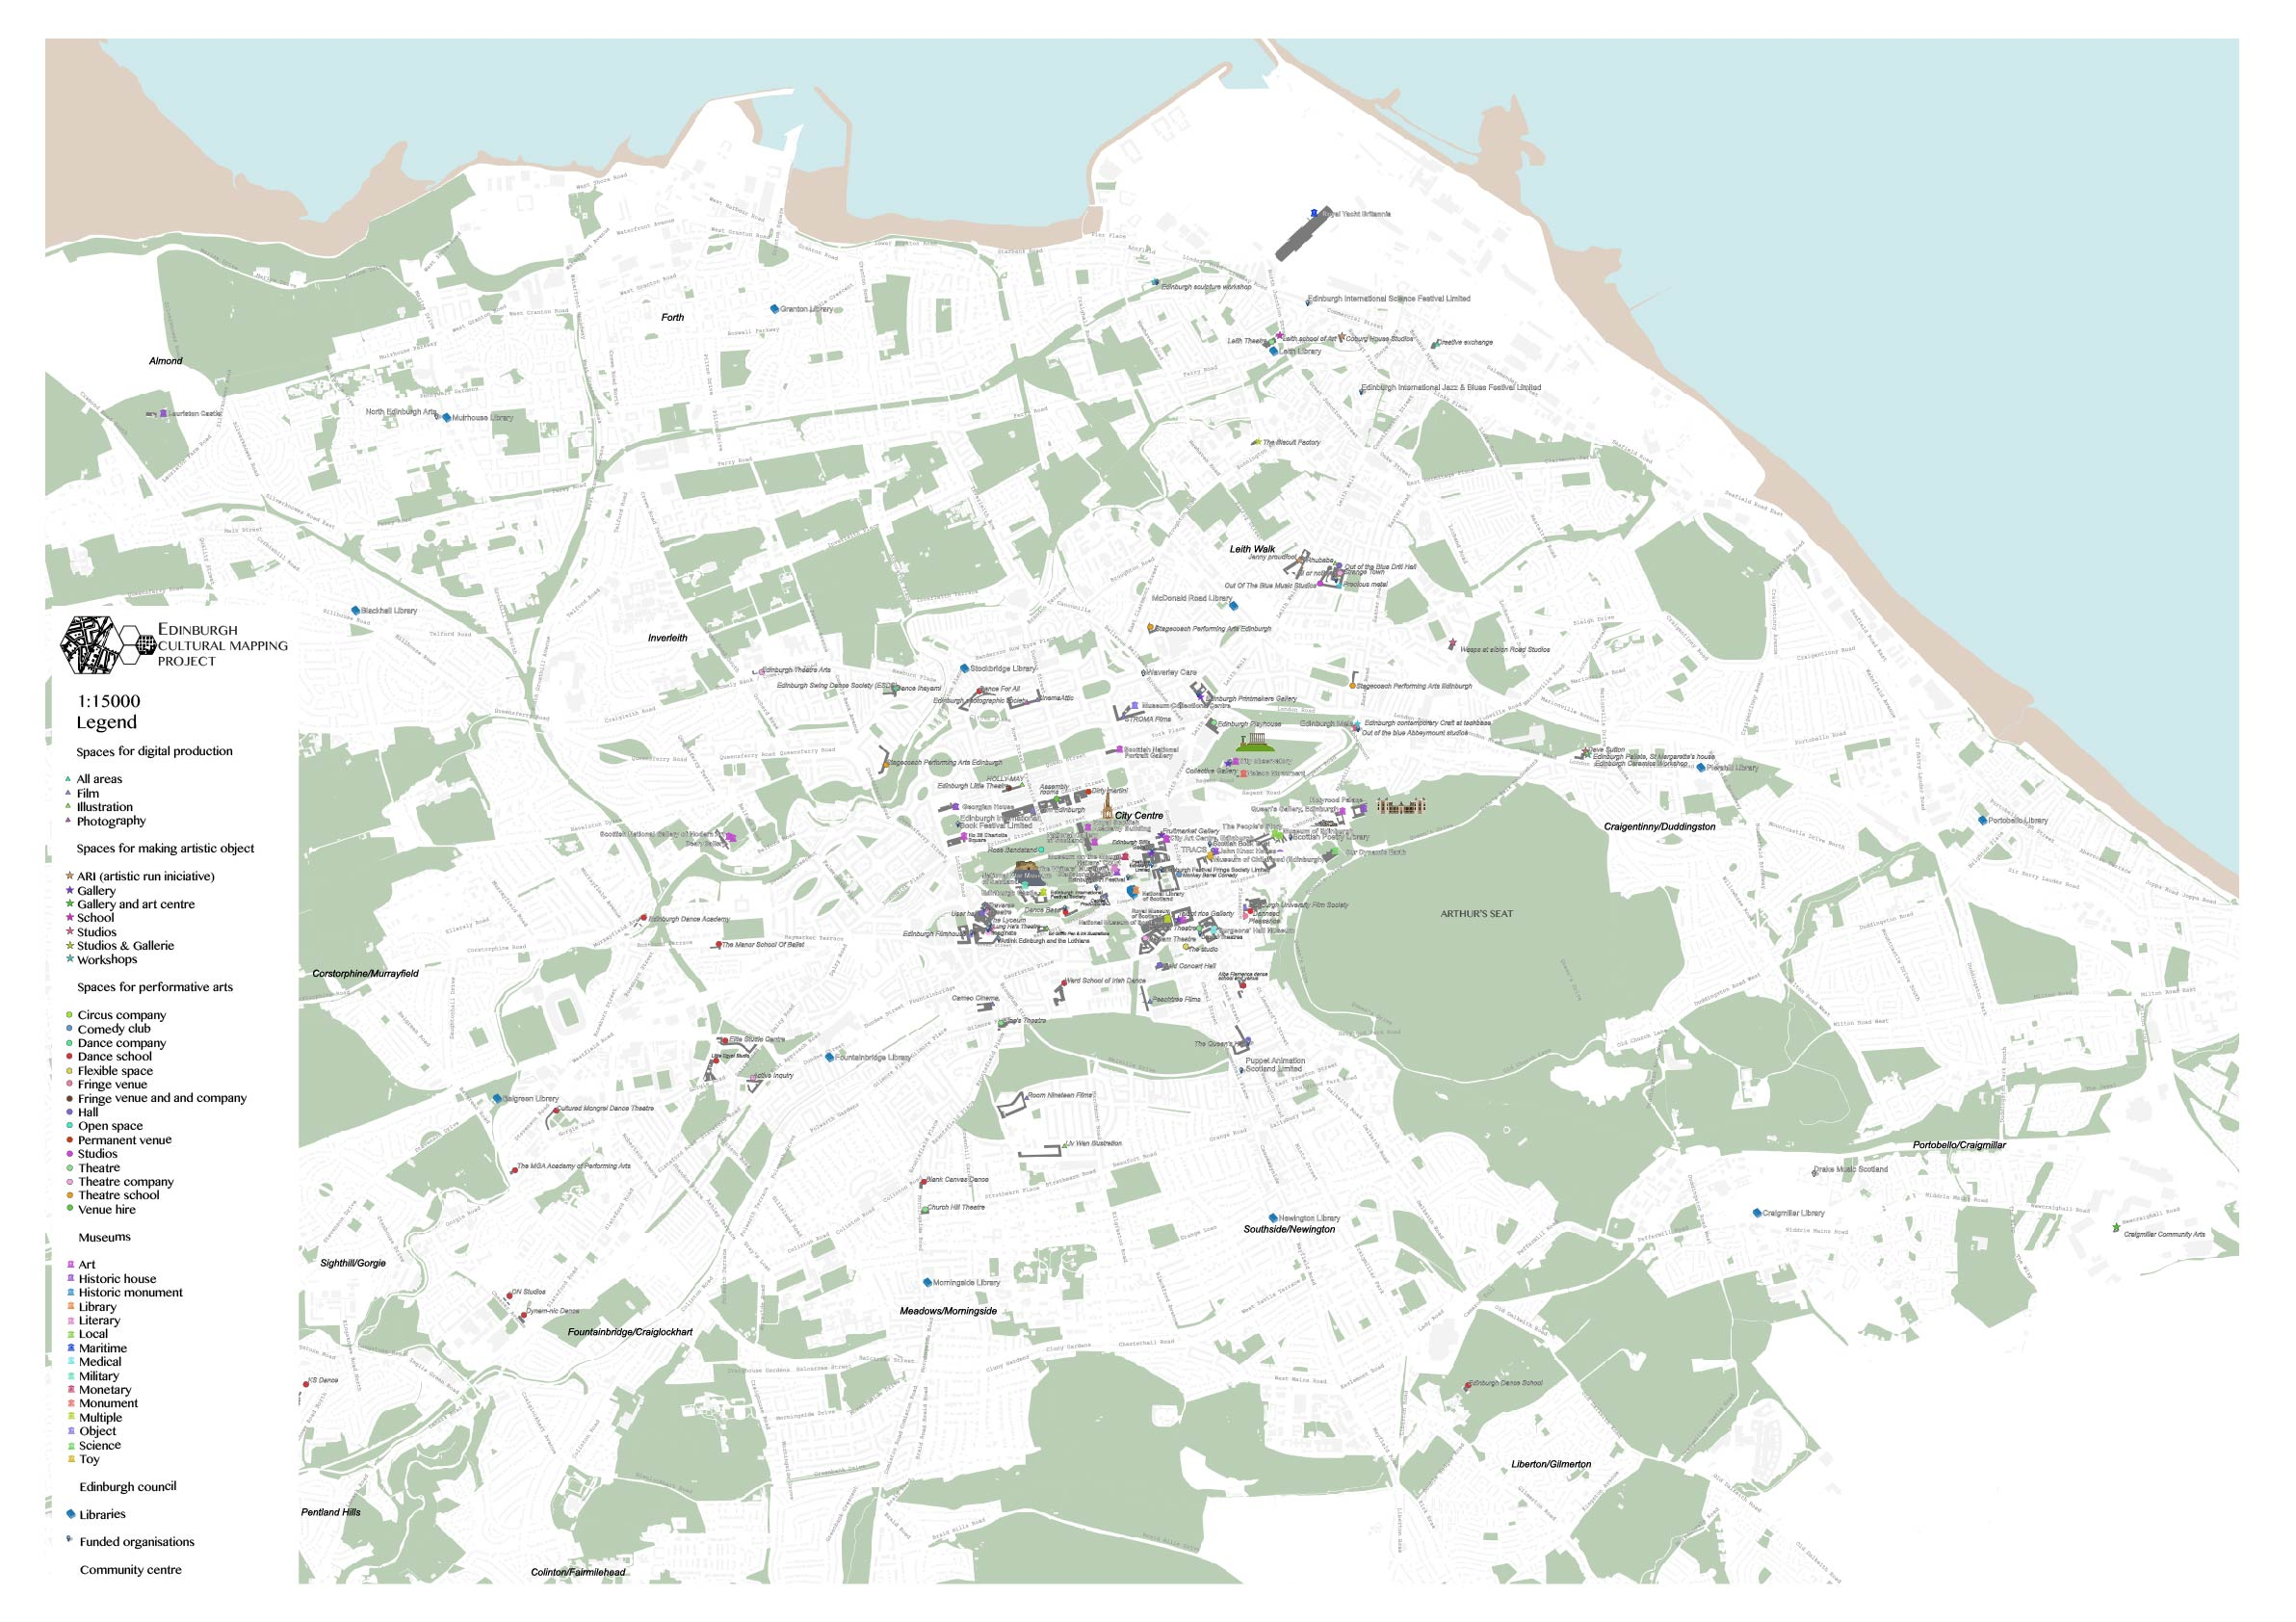 The map of cultural activities in Edinburgh.